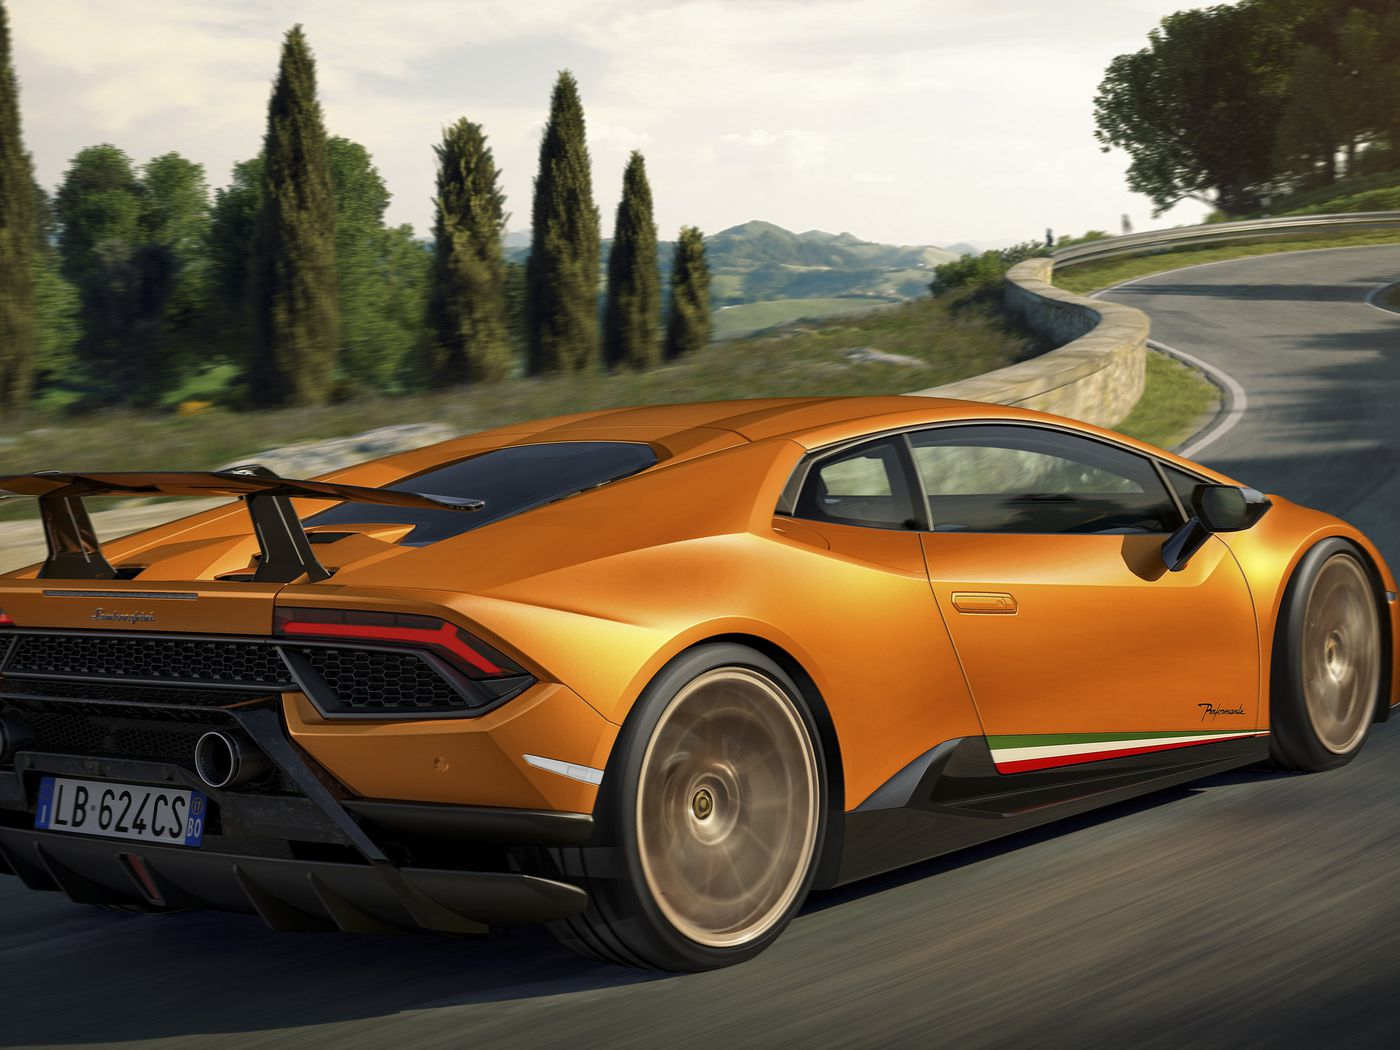 This Lamborghini Is The Fastest Production Car Ever To Lap The